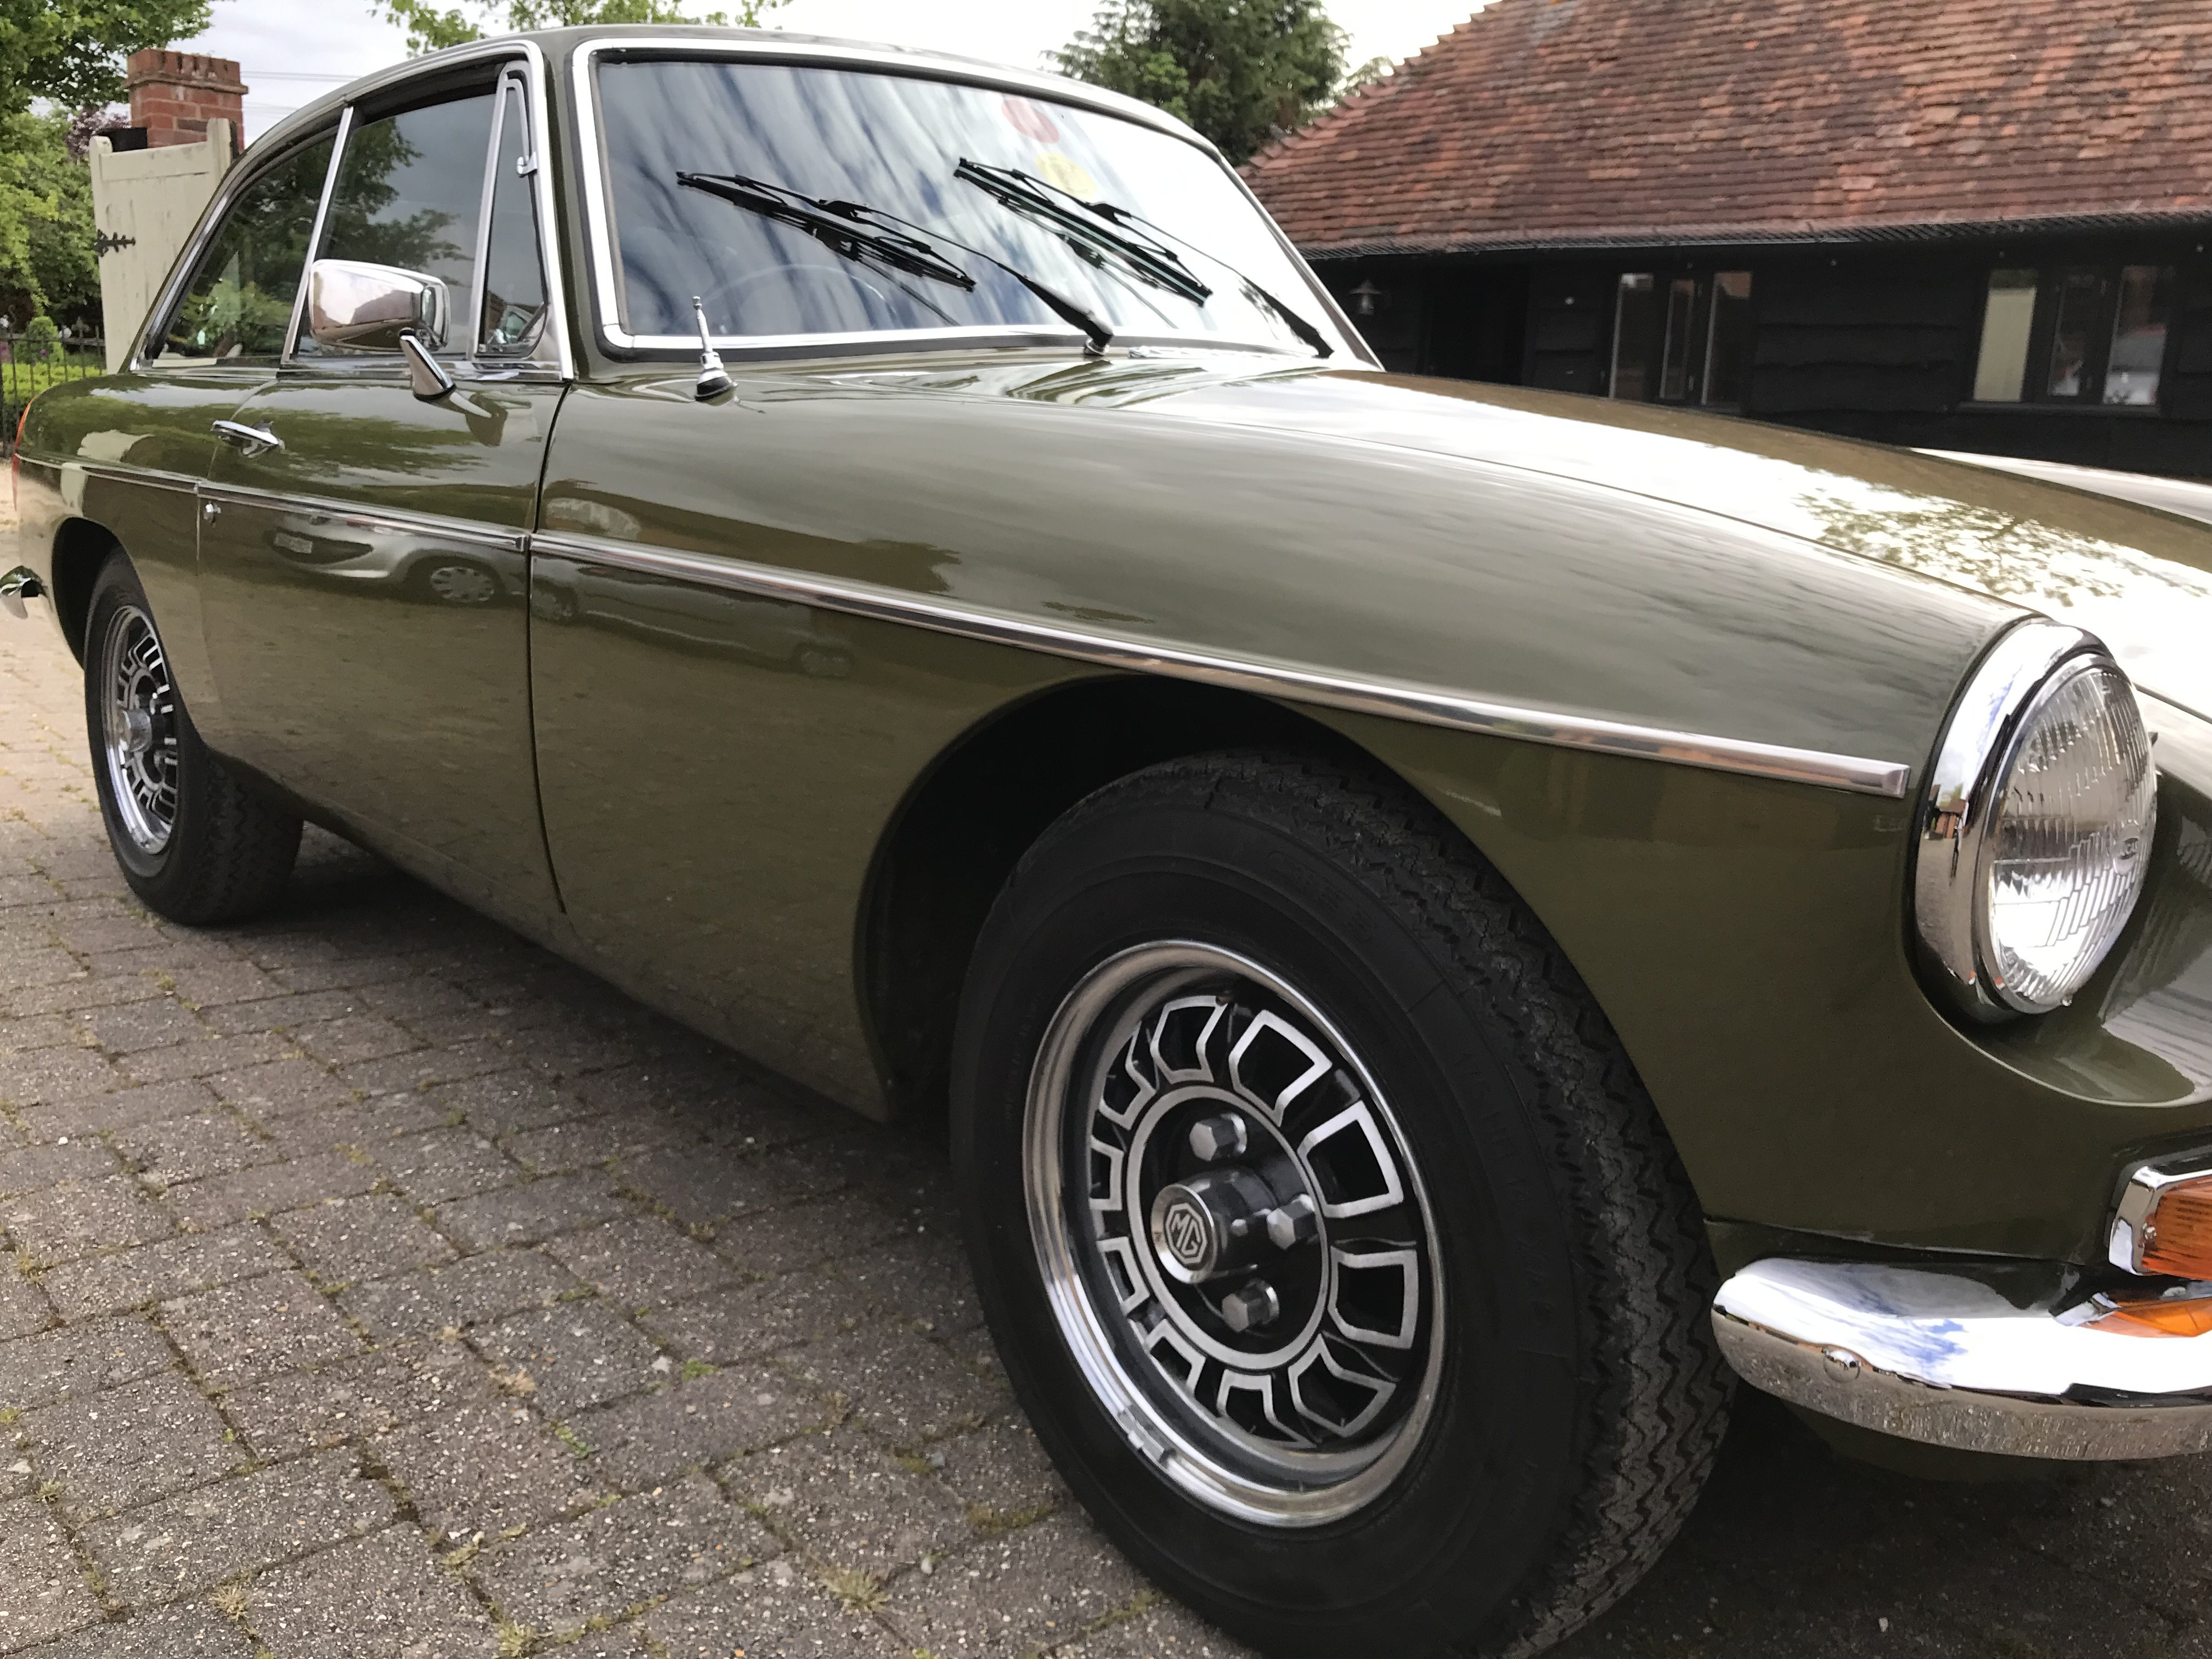 1975 MG BGT low mileage for the year For Sale (picture 10 of 12)